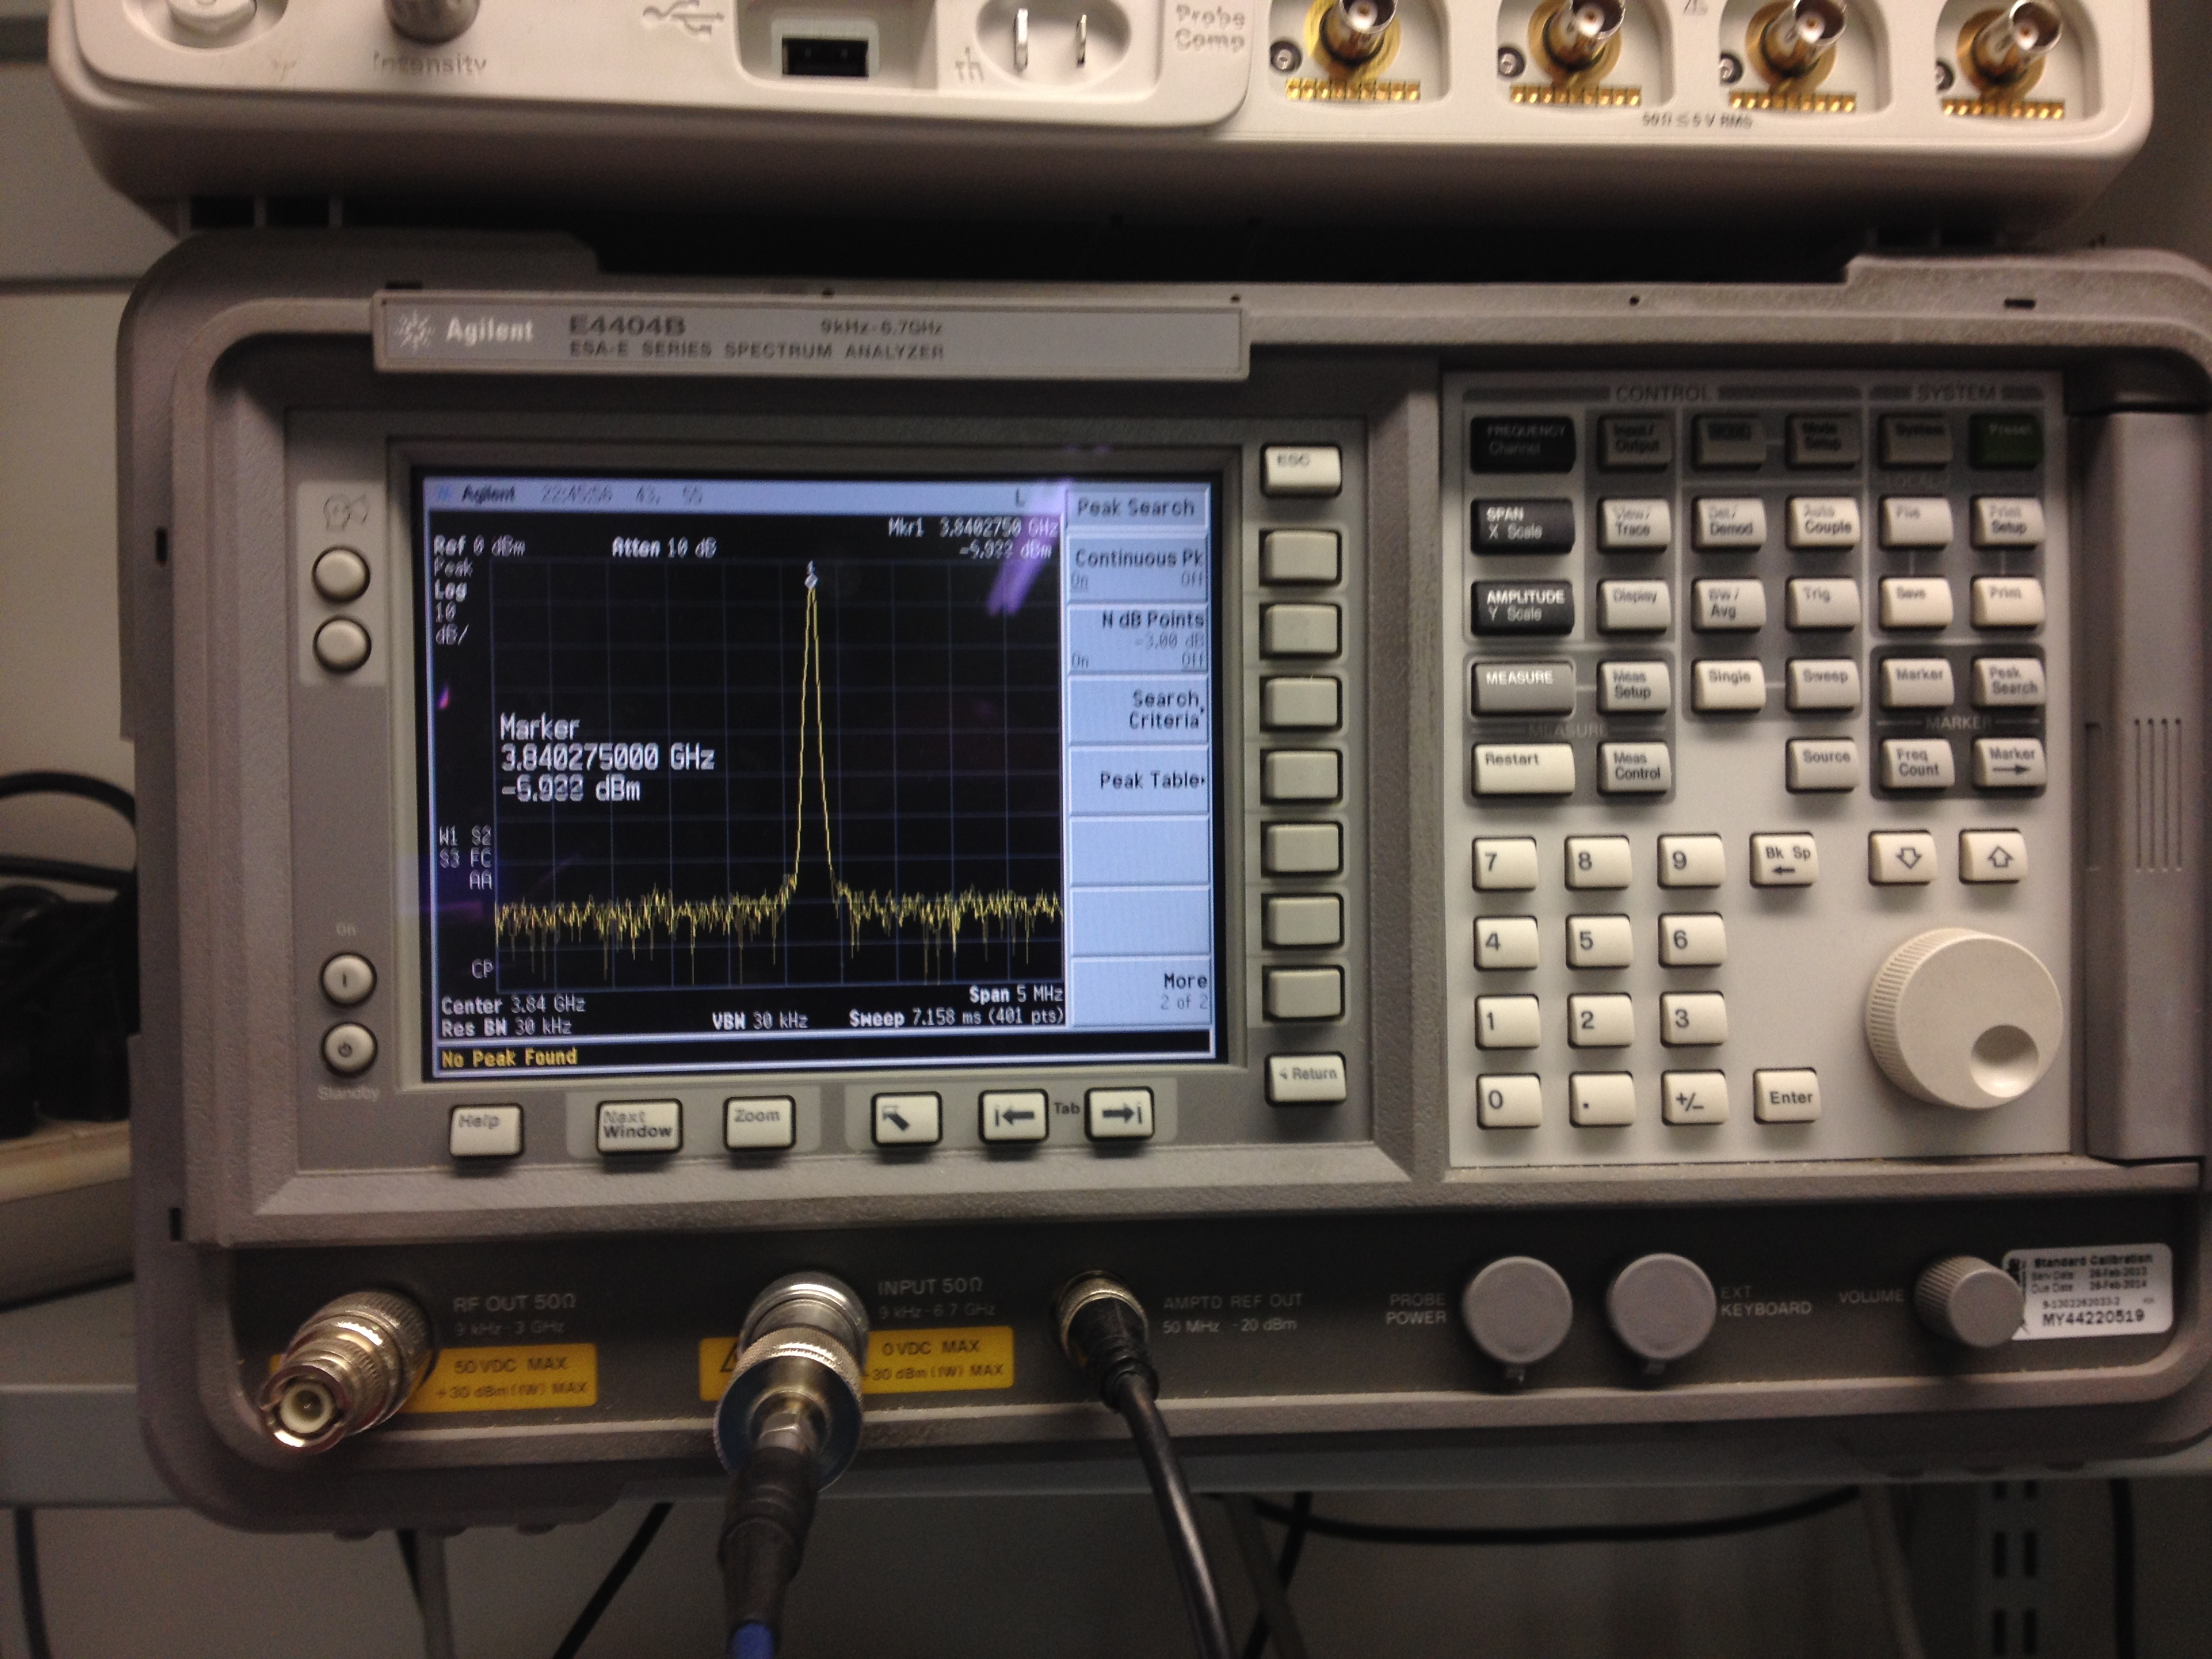 Post alignment of the VCO